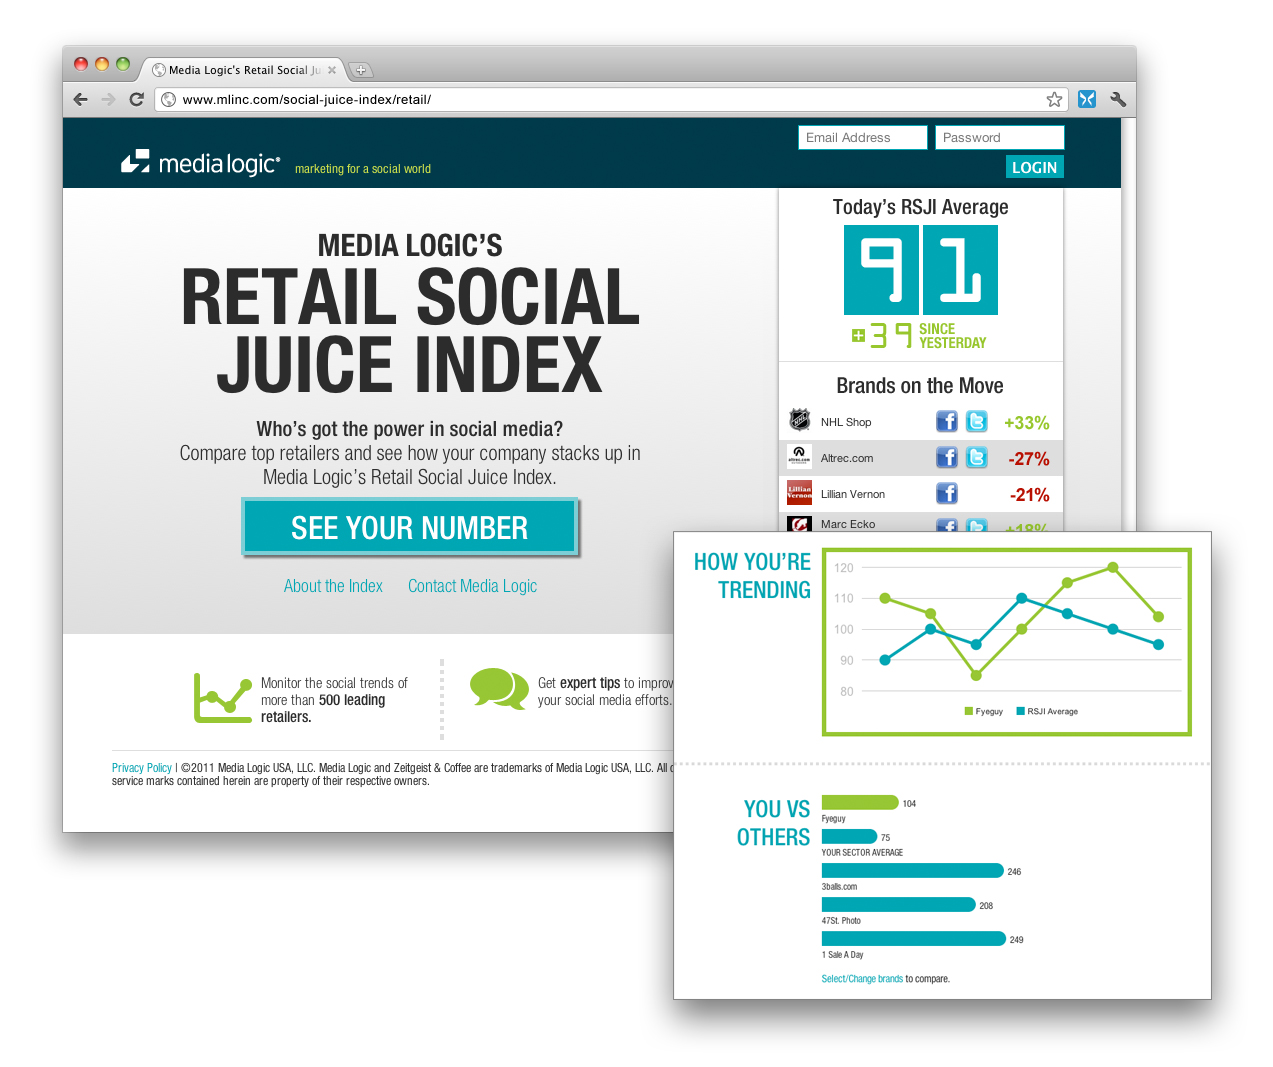 Media Logic's Retail Social Juice Index